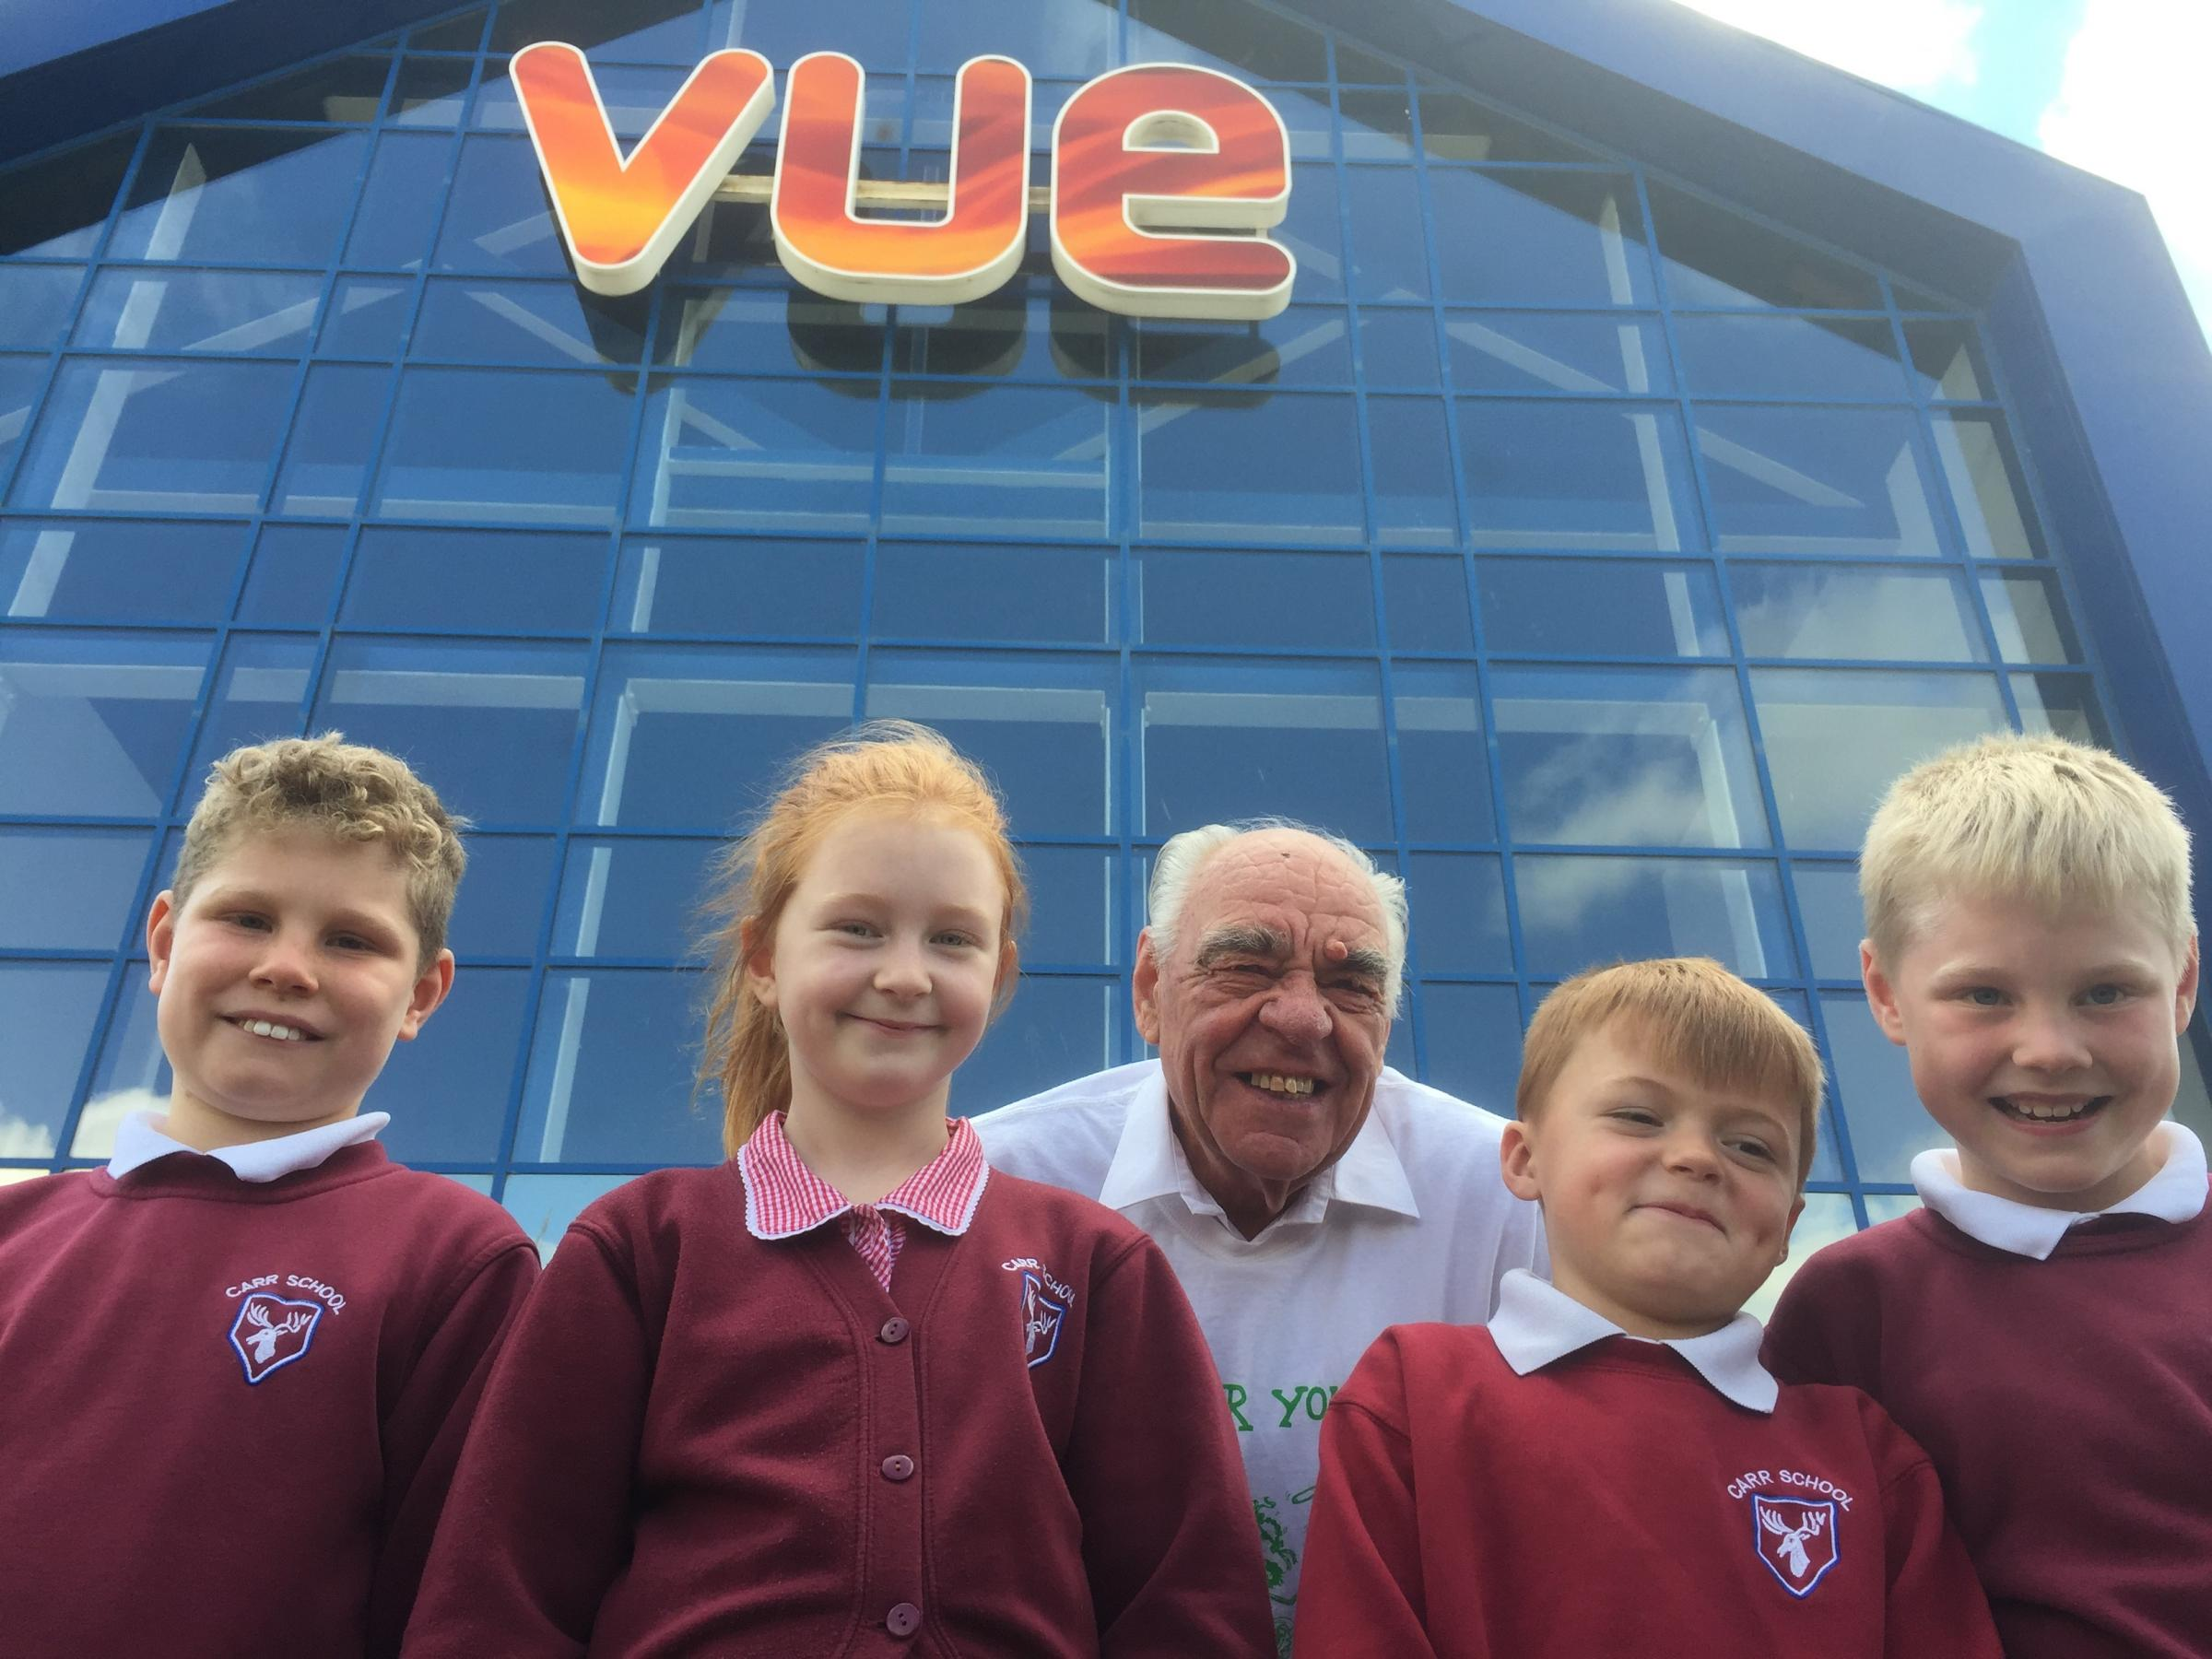 Carr Junior School pupils Sam Lawrence, left, Rosie Belton, Ryan Willetts and Tom Lawrence with Jim Dales, from The Secret Garden Project, at Vue, Clifton Moor, York